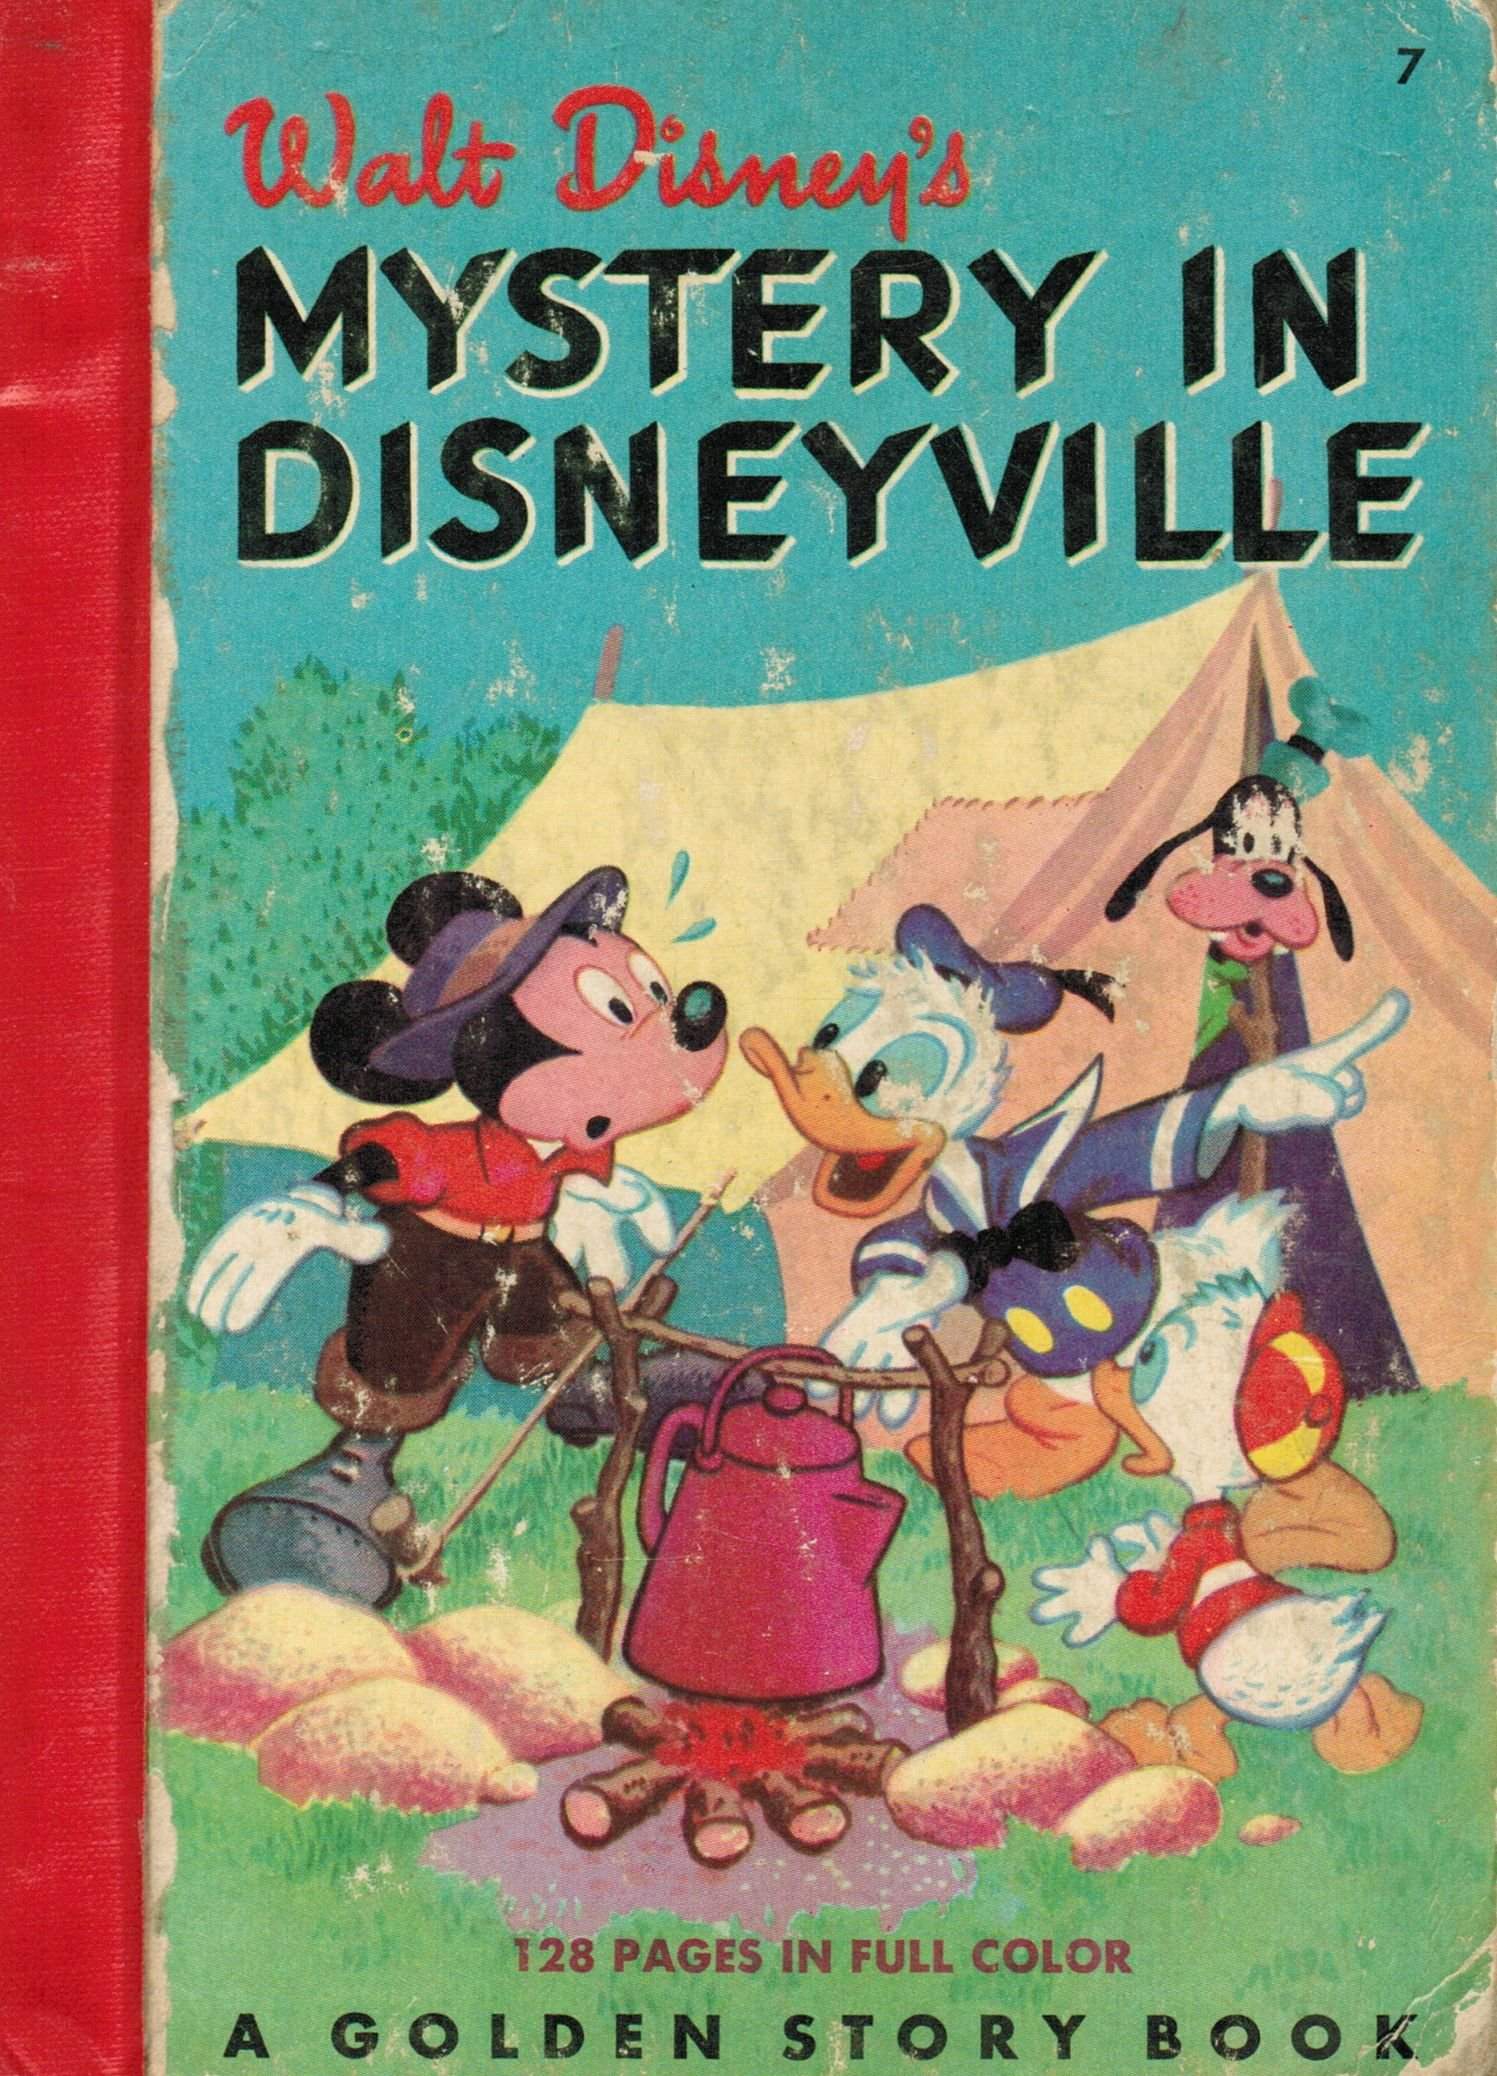 Mystery in Disneyville